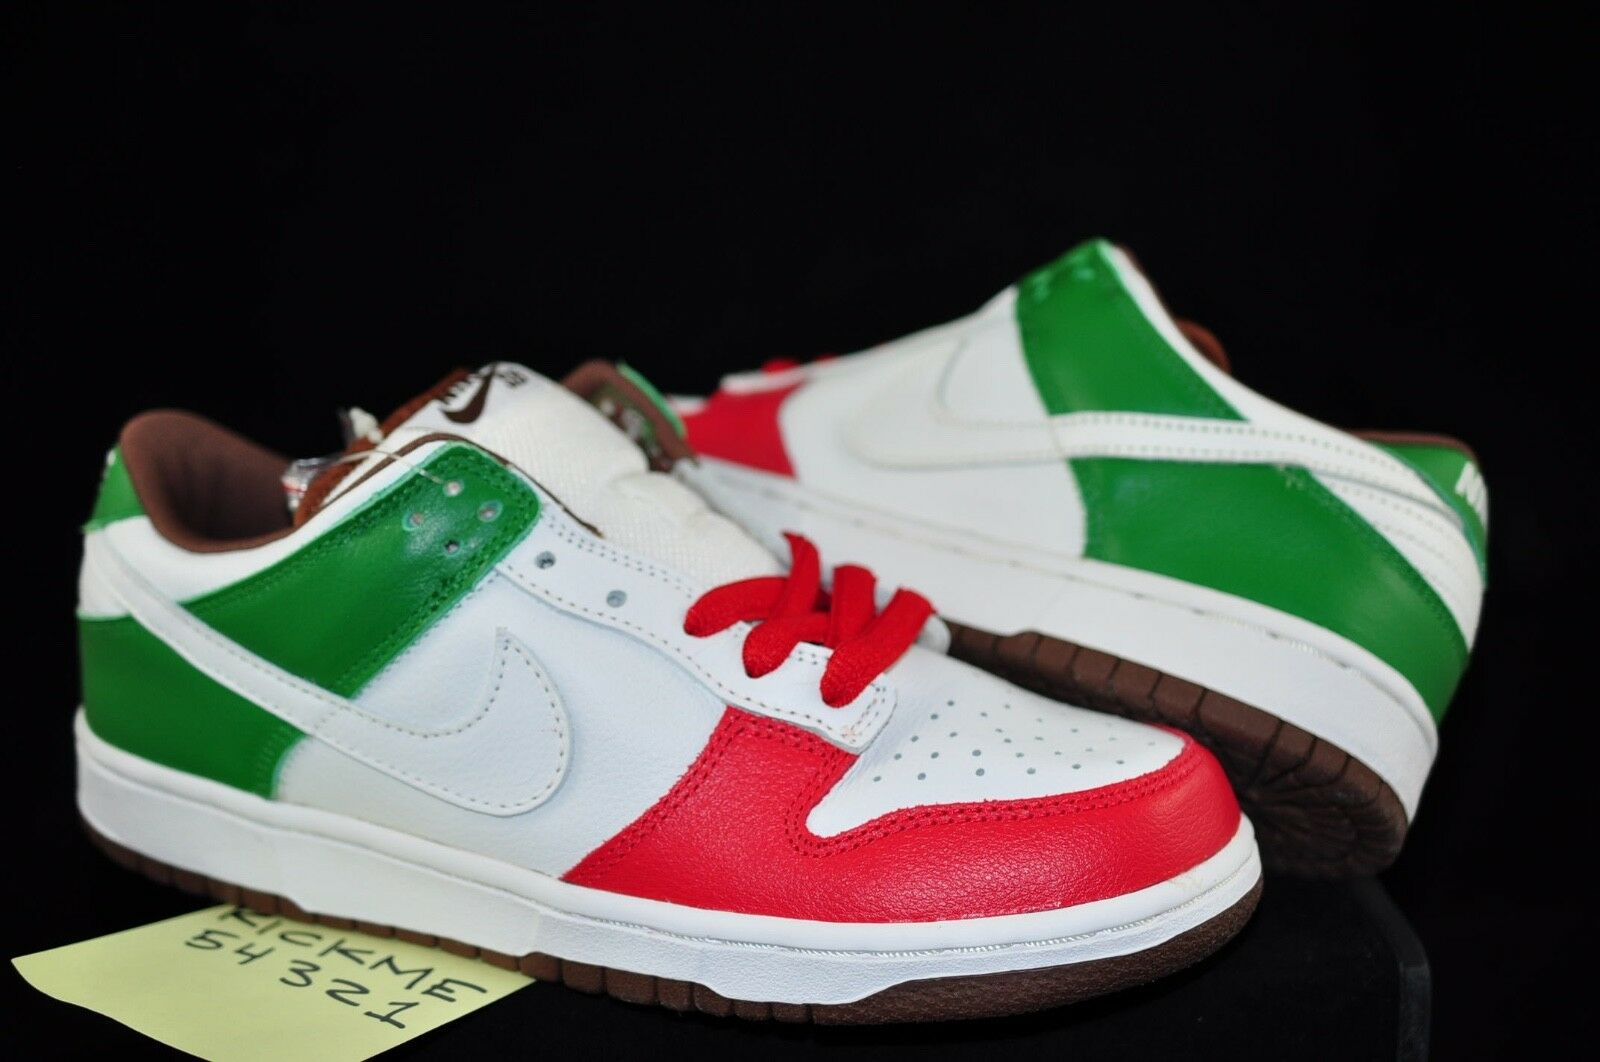 NIKE DUNK LOW PRO SB CINCO DE MAYO SIZE 6.5 NEW DS VERY RARE GIRLS GS WOMENS LTD